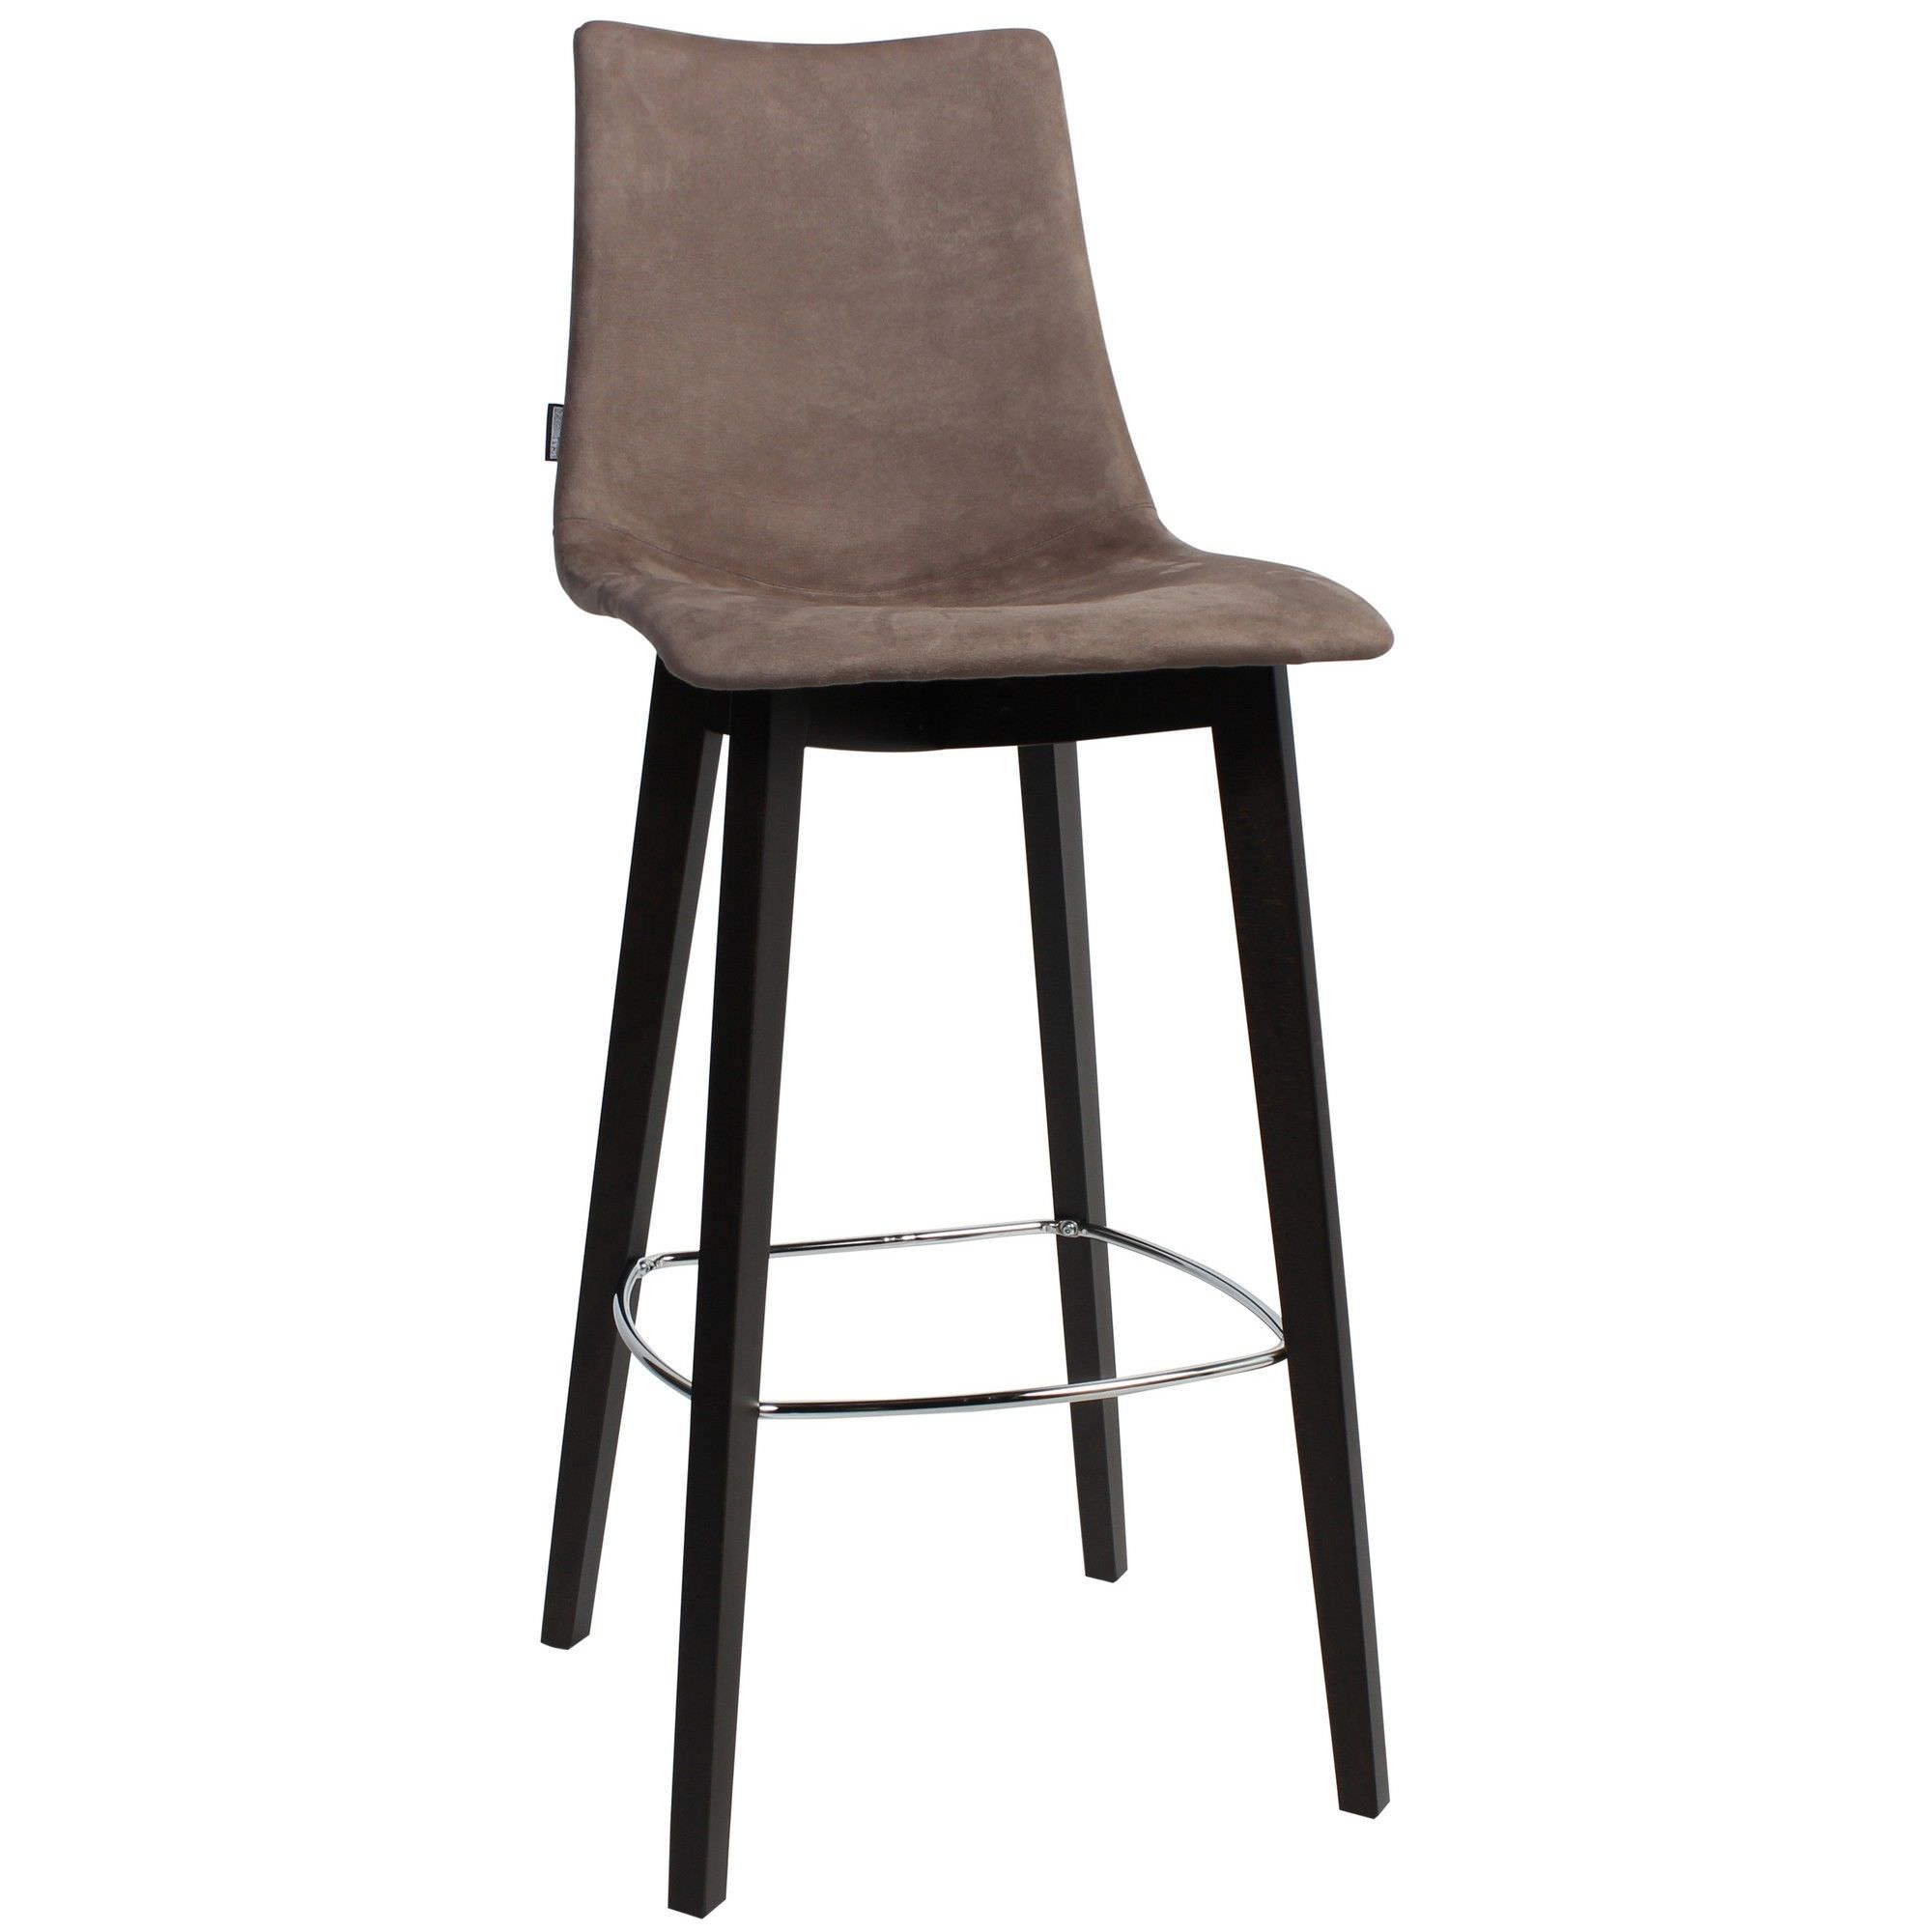 Zebra Pop Italian Made Commercial Grade Fabric Bar Stool, Timber Leg, Brown / Wenge